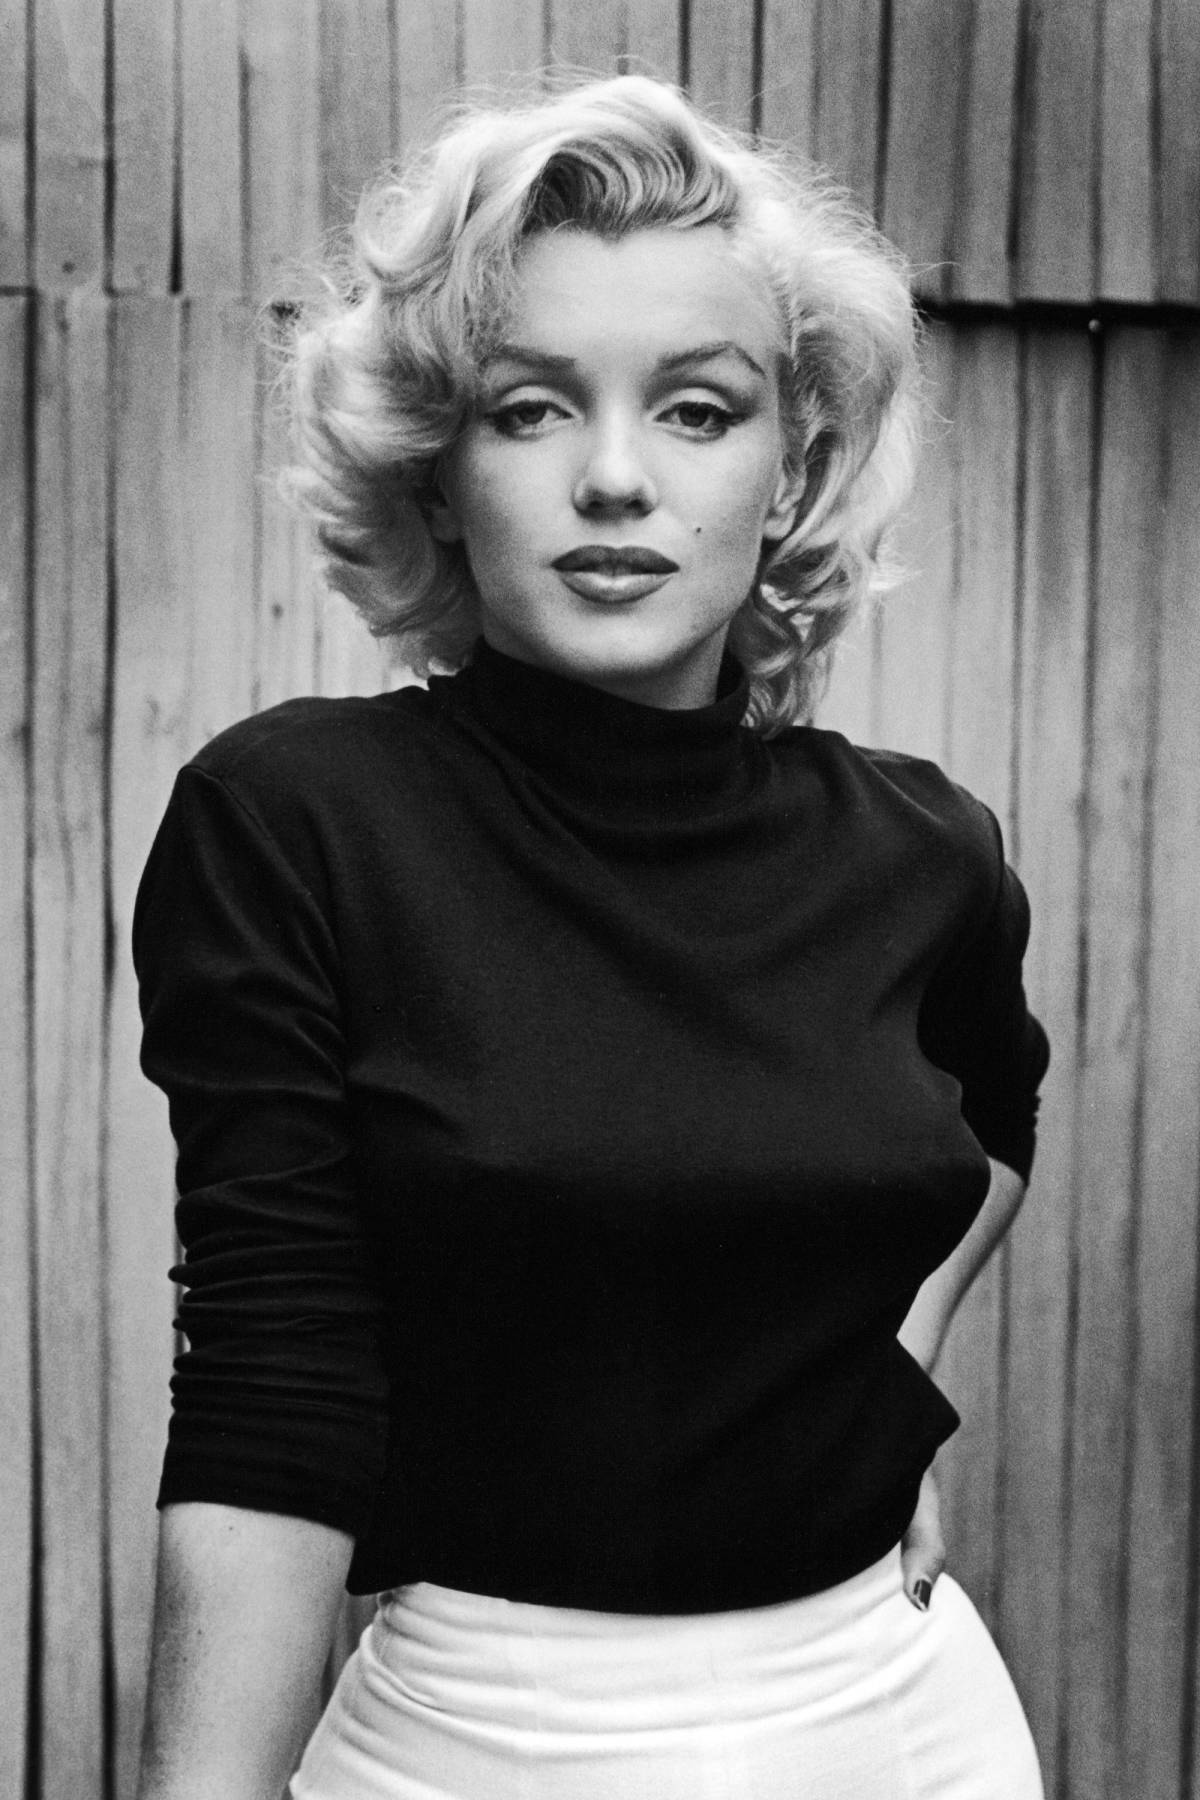 15 Pictures Of Marilyn Monroe